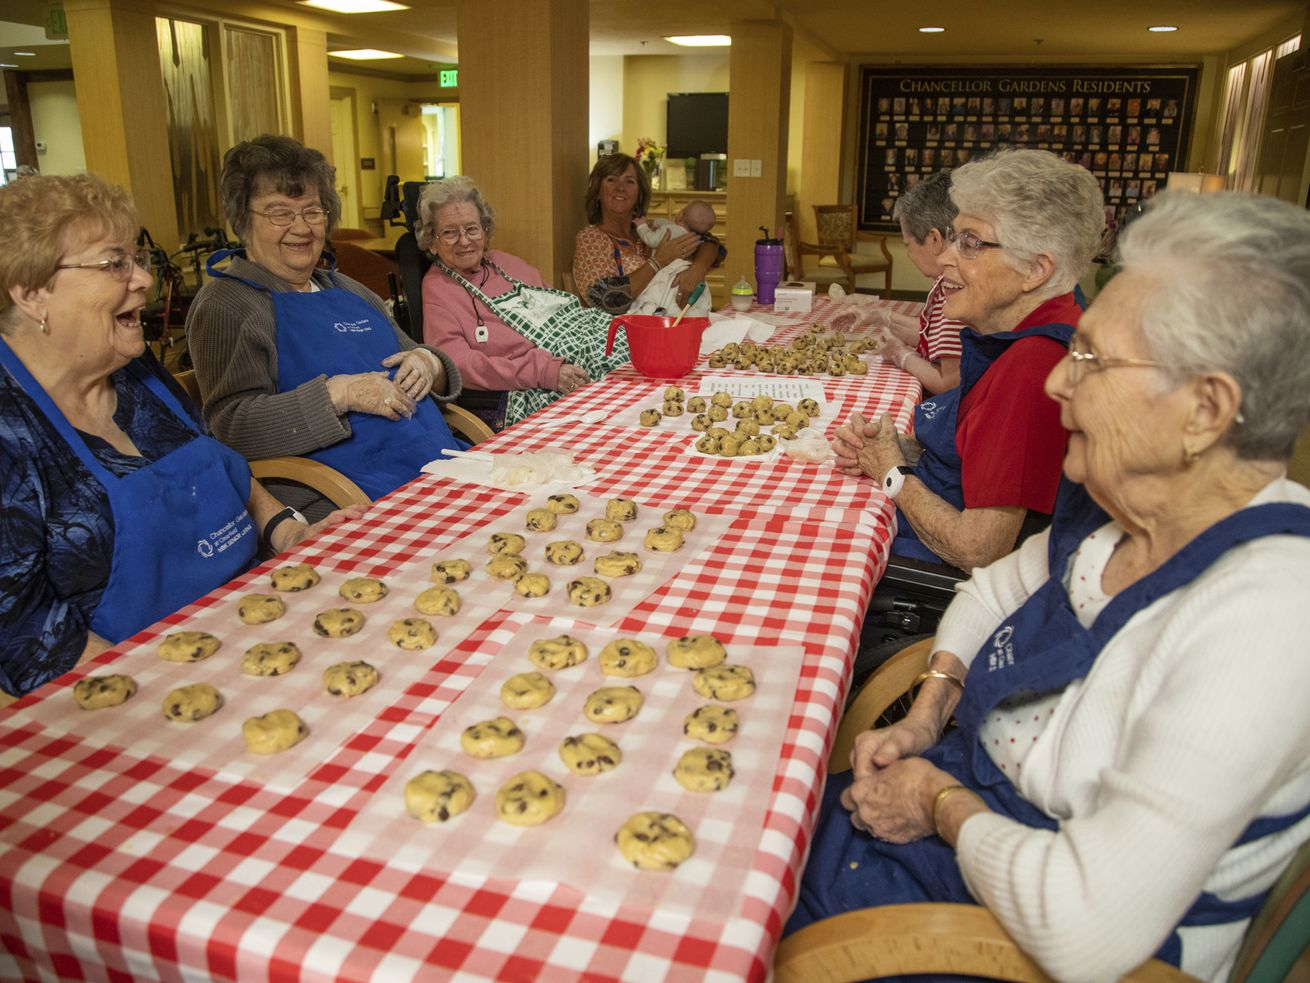 Senior citizens raising money for charity with bake sales